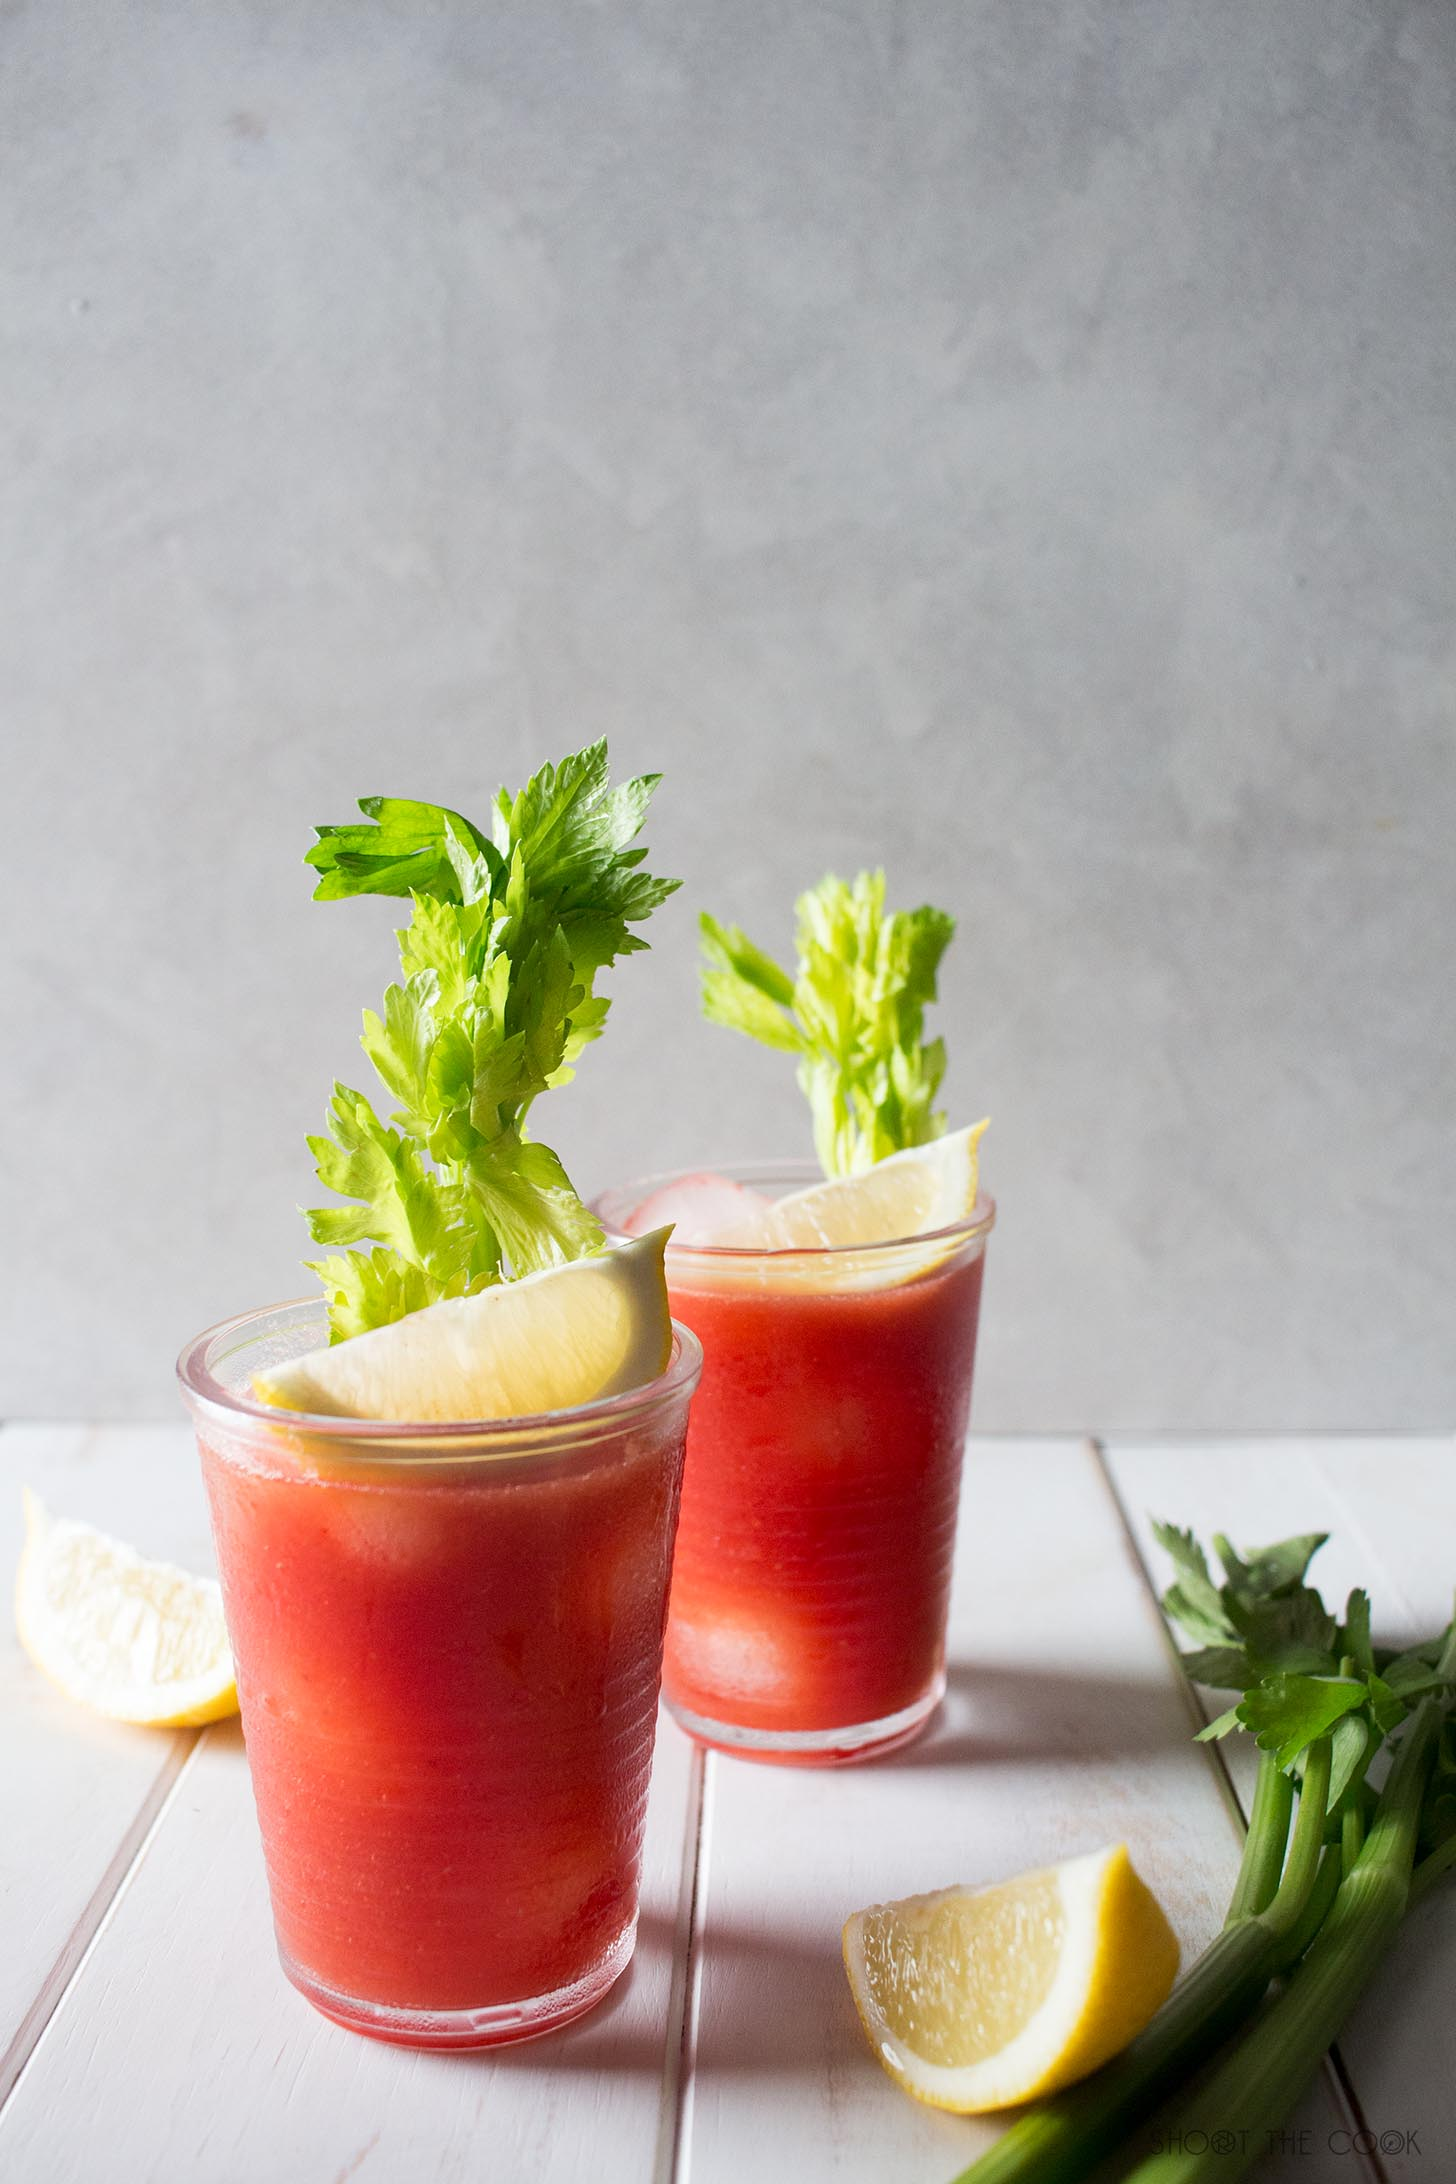 bloody mary receta facil